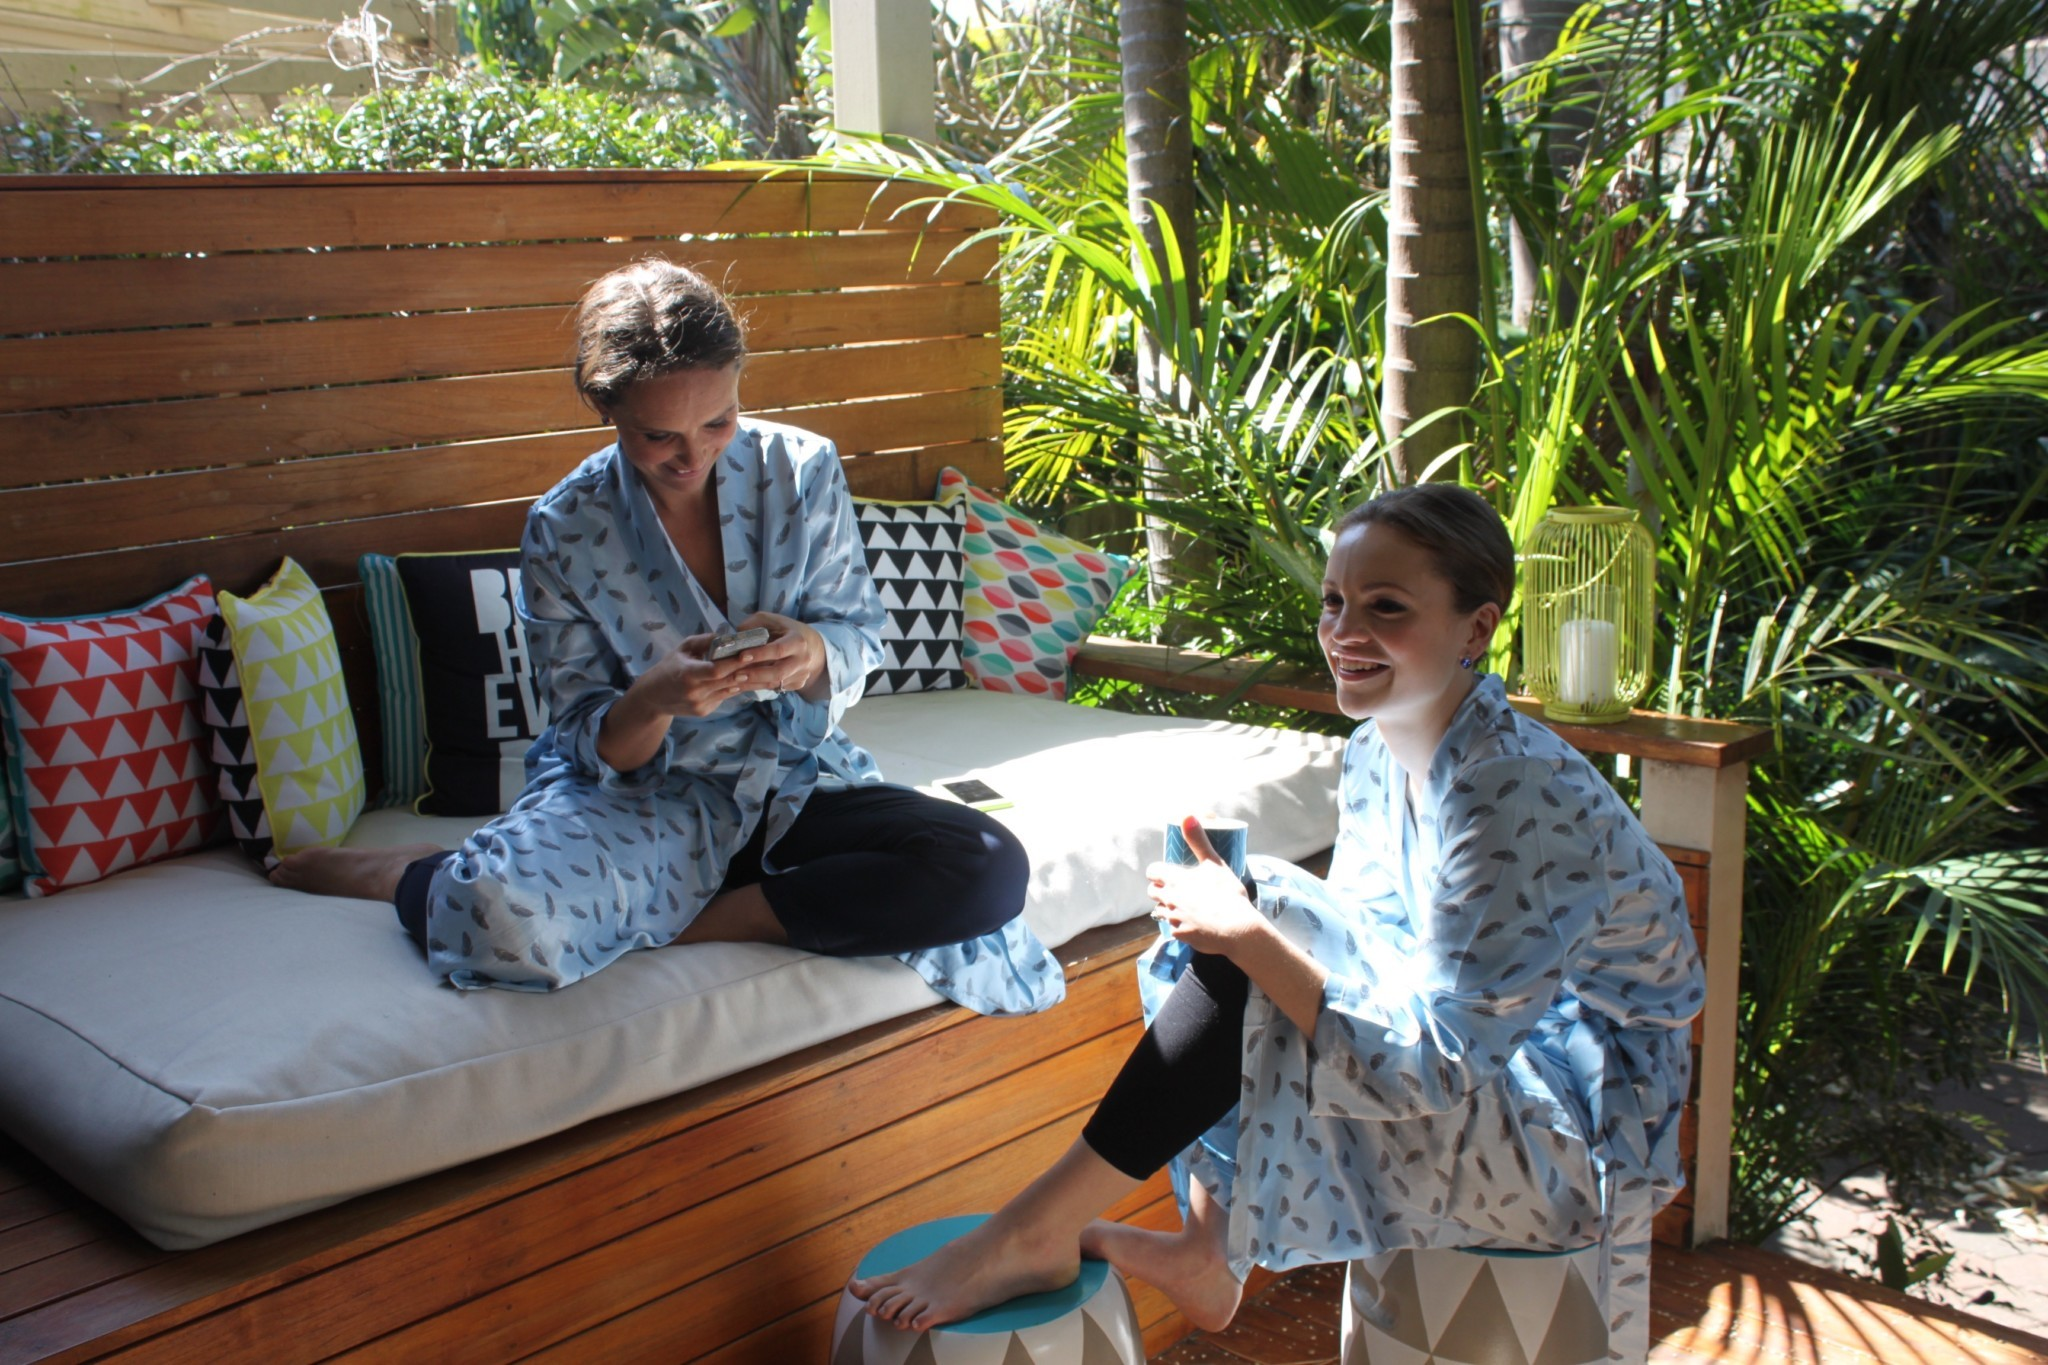 Bondi Yoga House are invited to use the spaces as they wish. The outdoor day bed in the garden is a favourite spot. Image © Bondi Yoga House